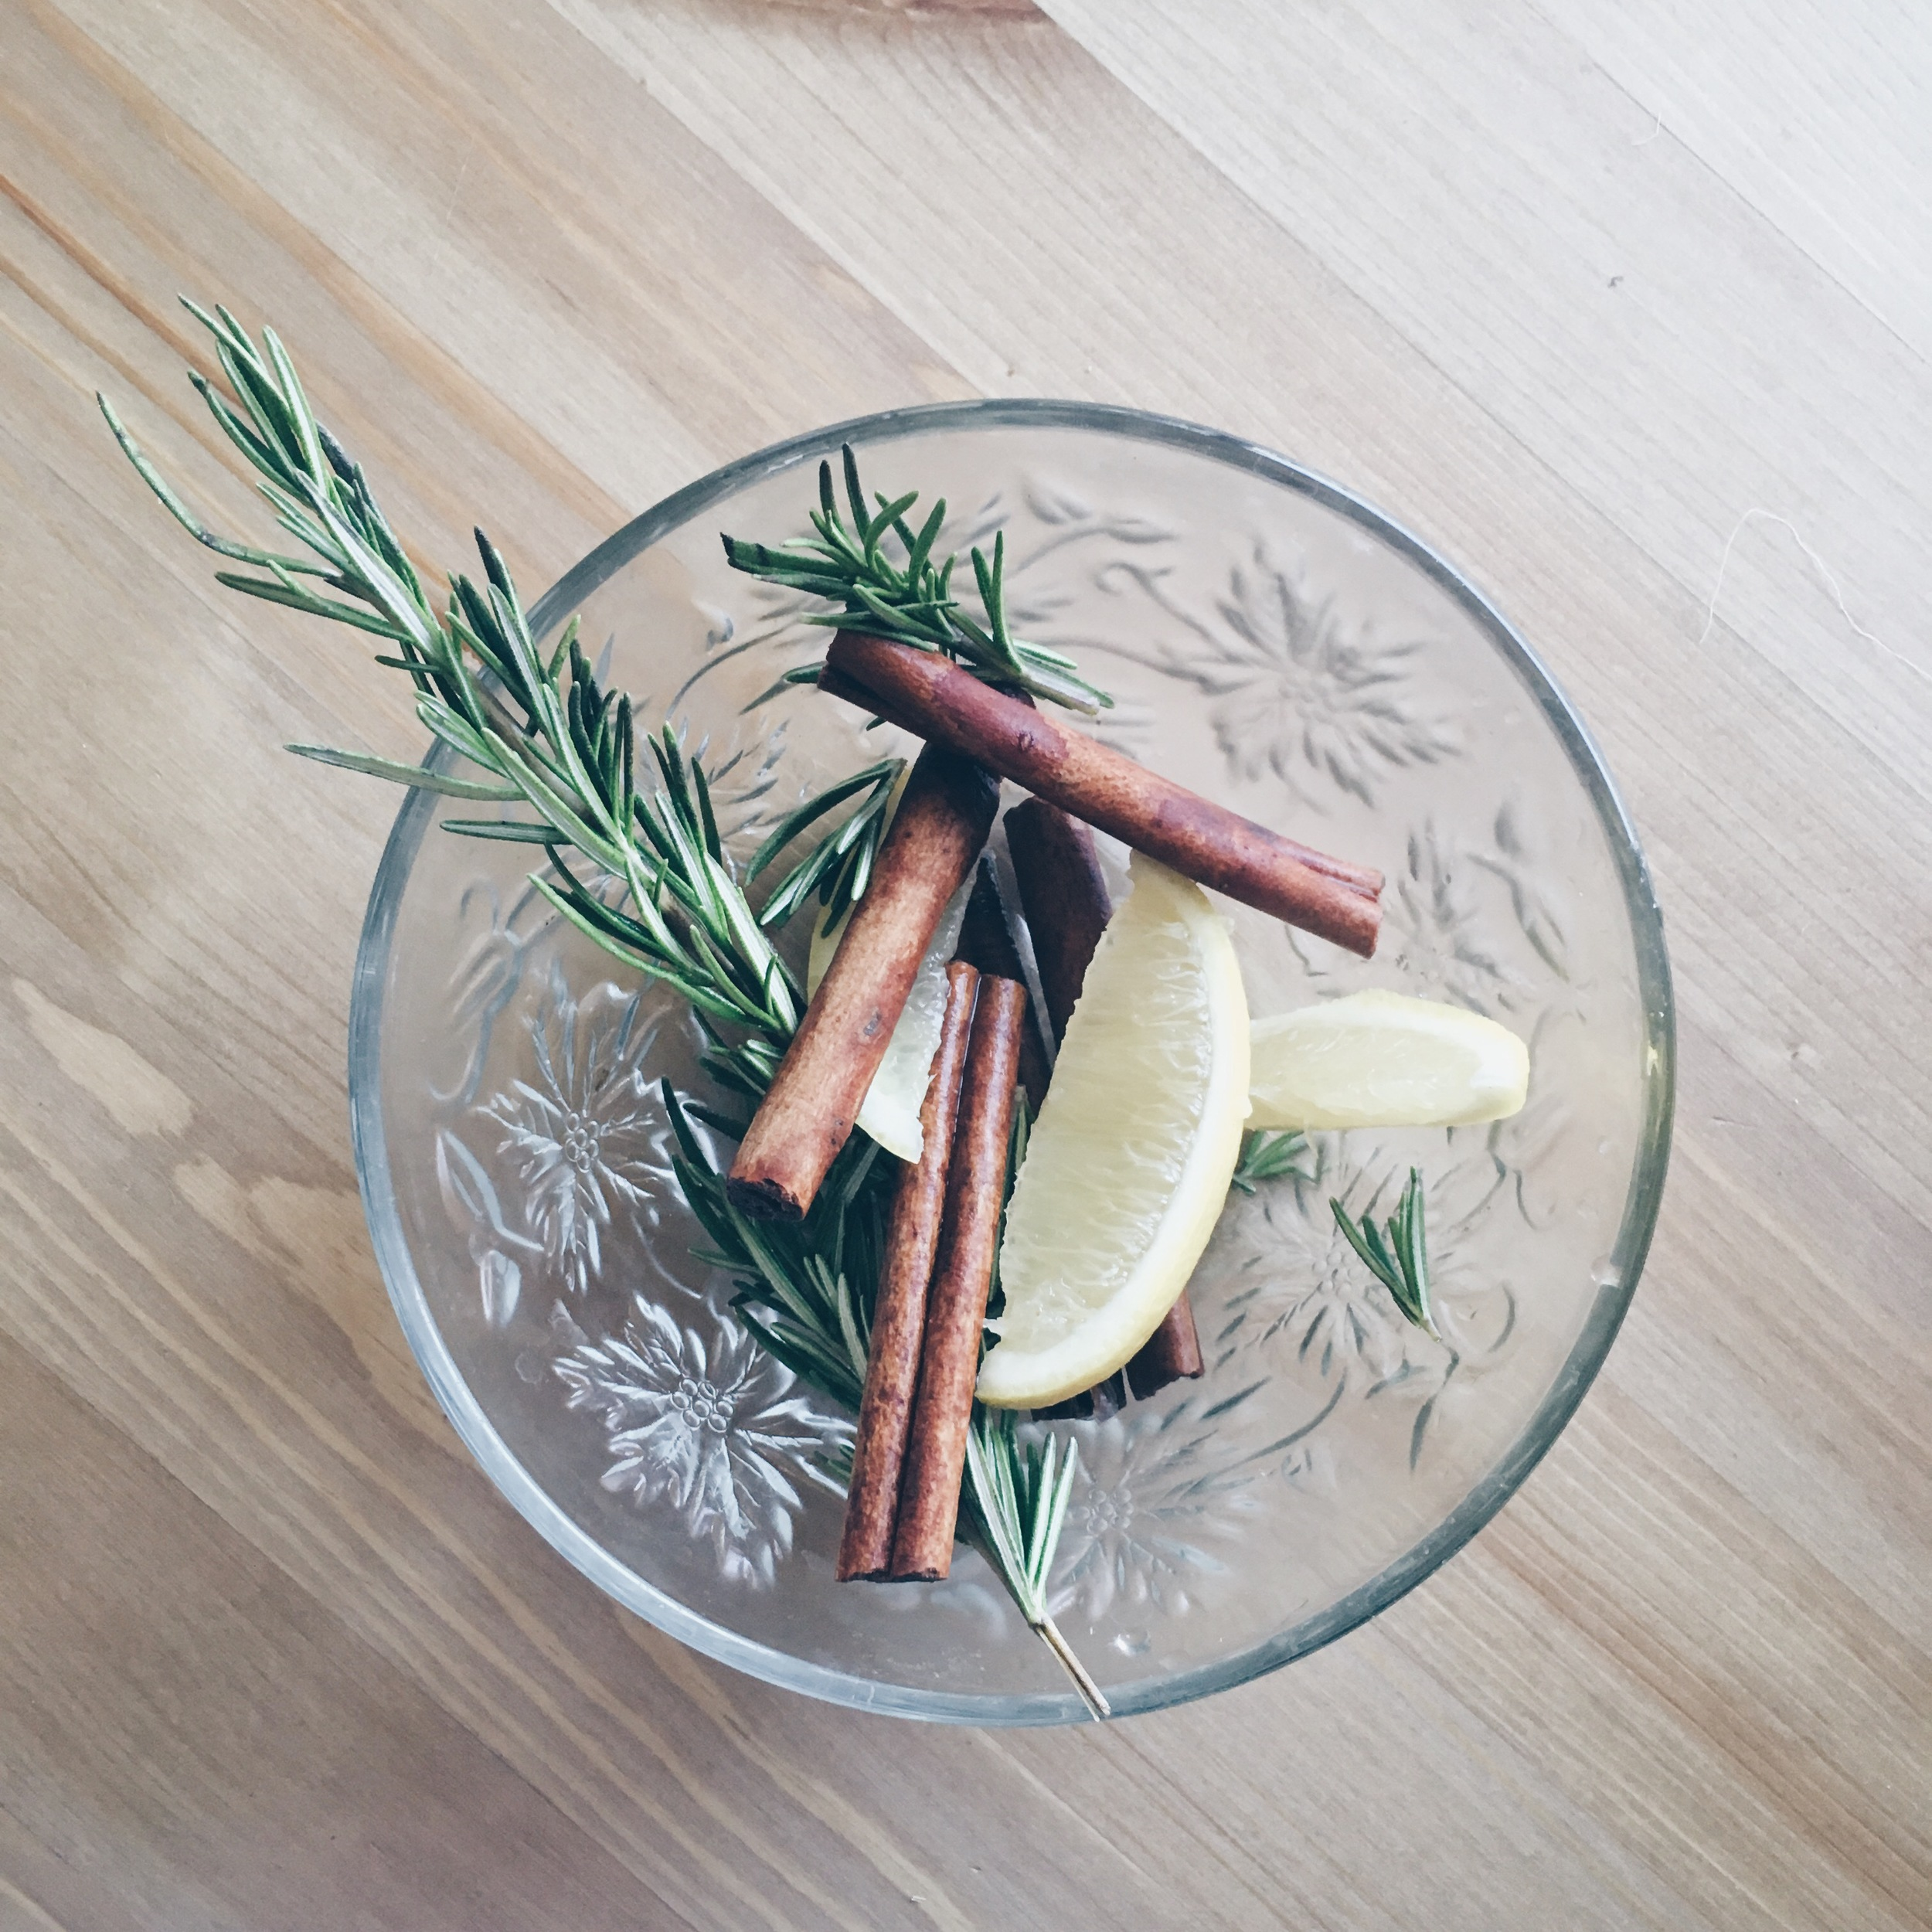 Homemade potpourri with cinnamon sticks, lemon, and rosemary. A perfect blend of fresh and festive. Check out my video  here  for more info.